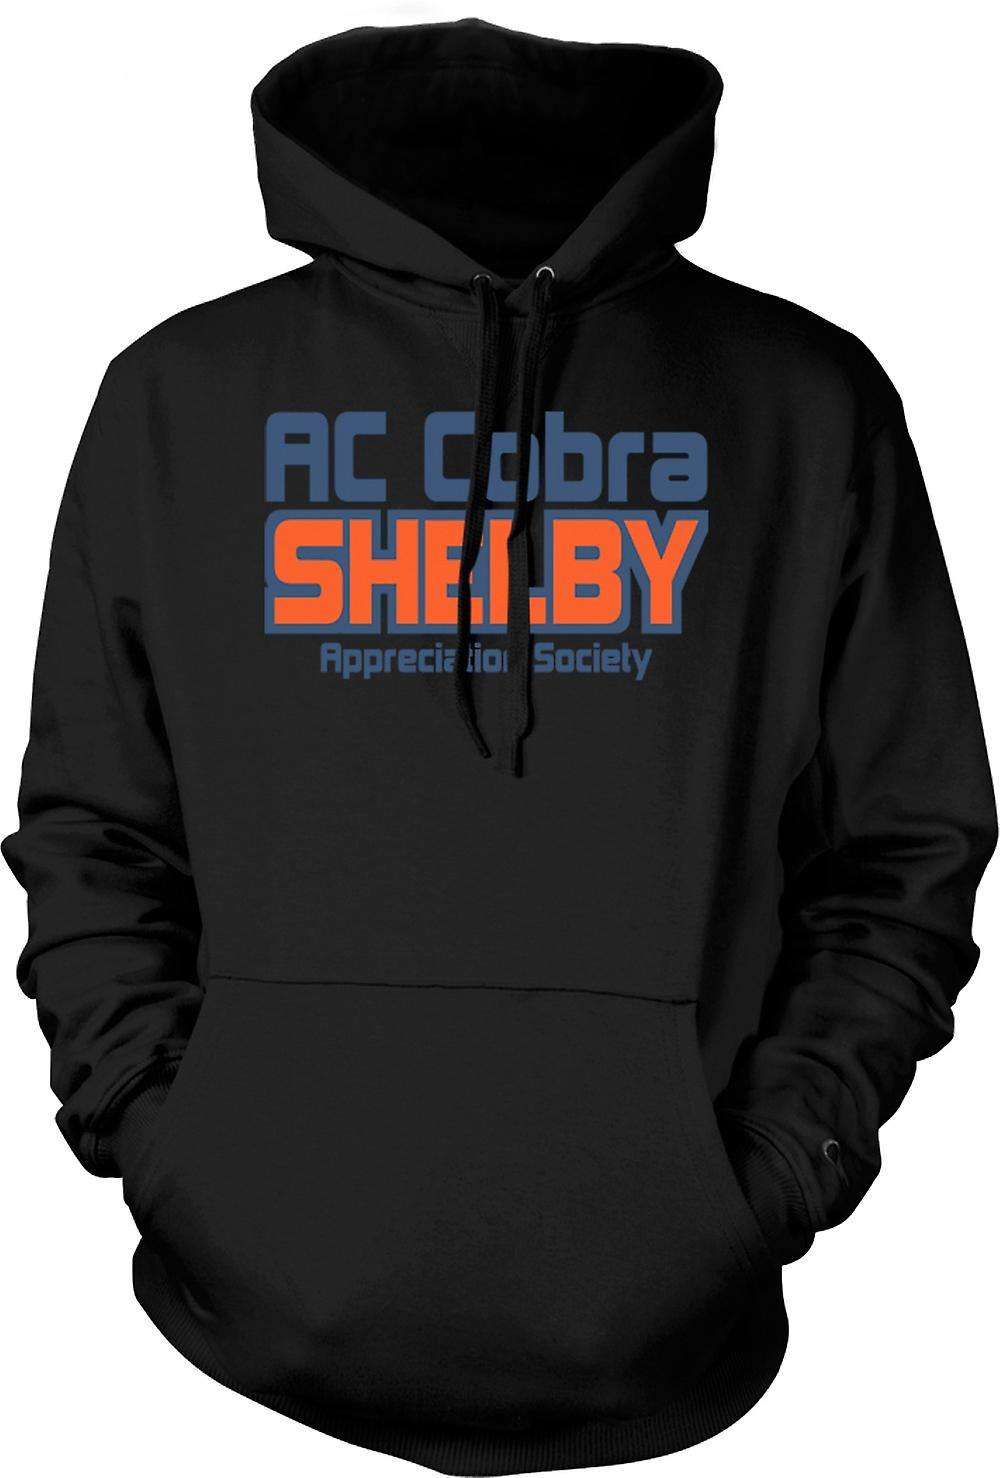 Felpa con cappuccio uomo - AC Cobra Shelby Appreciation Society